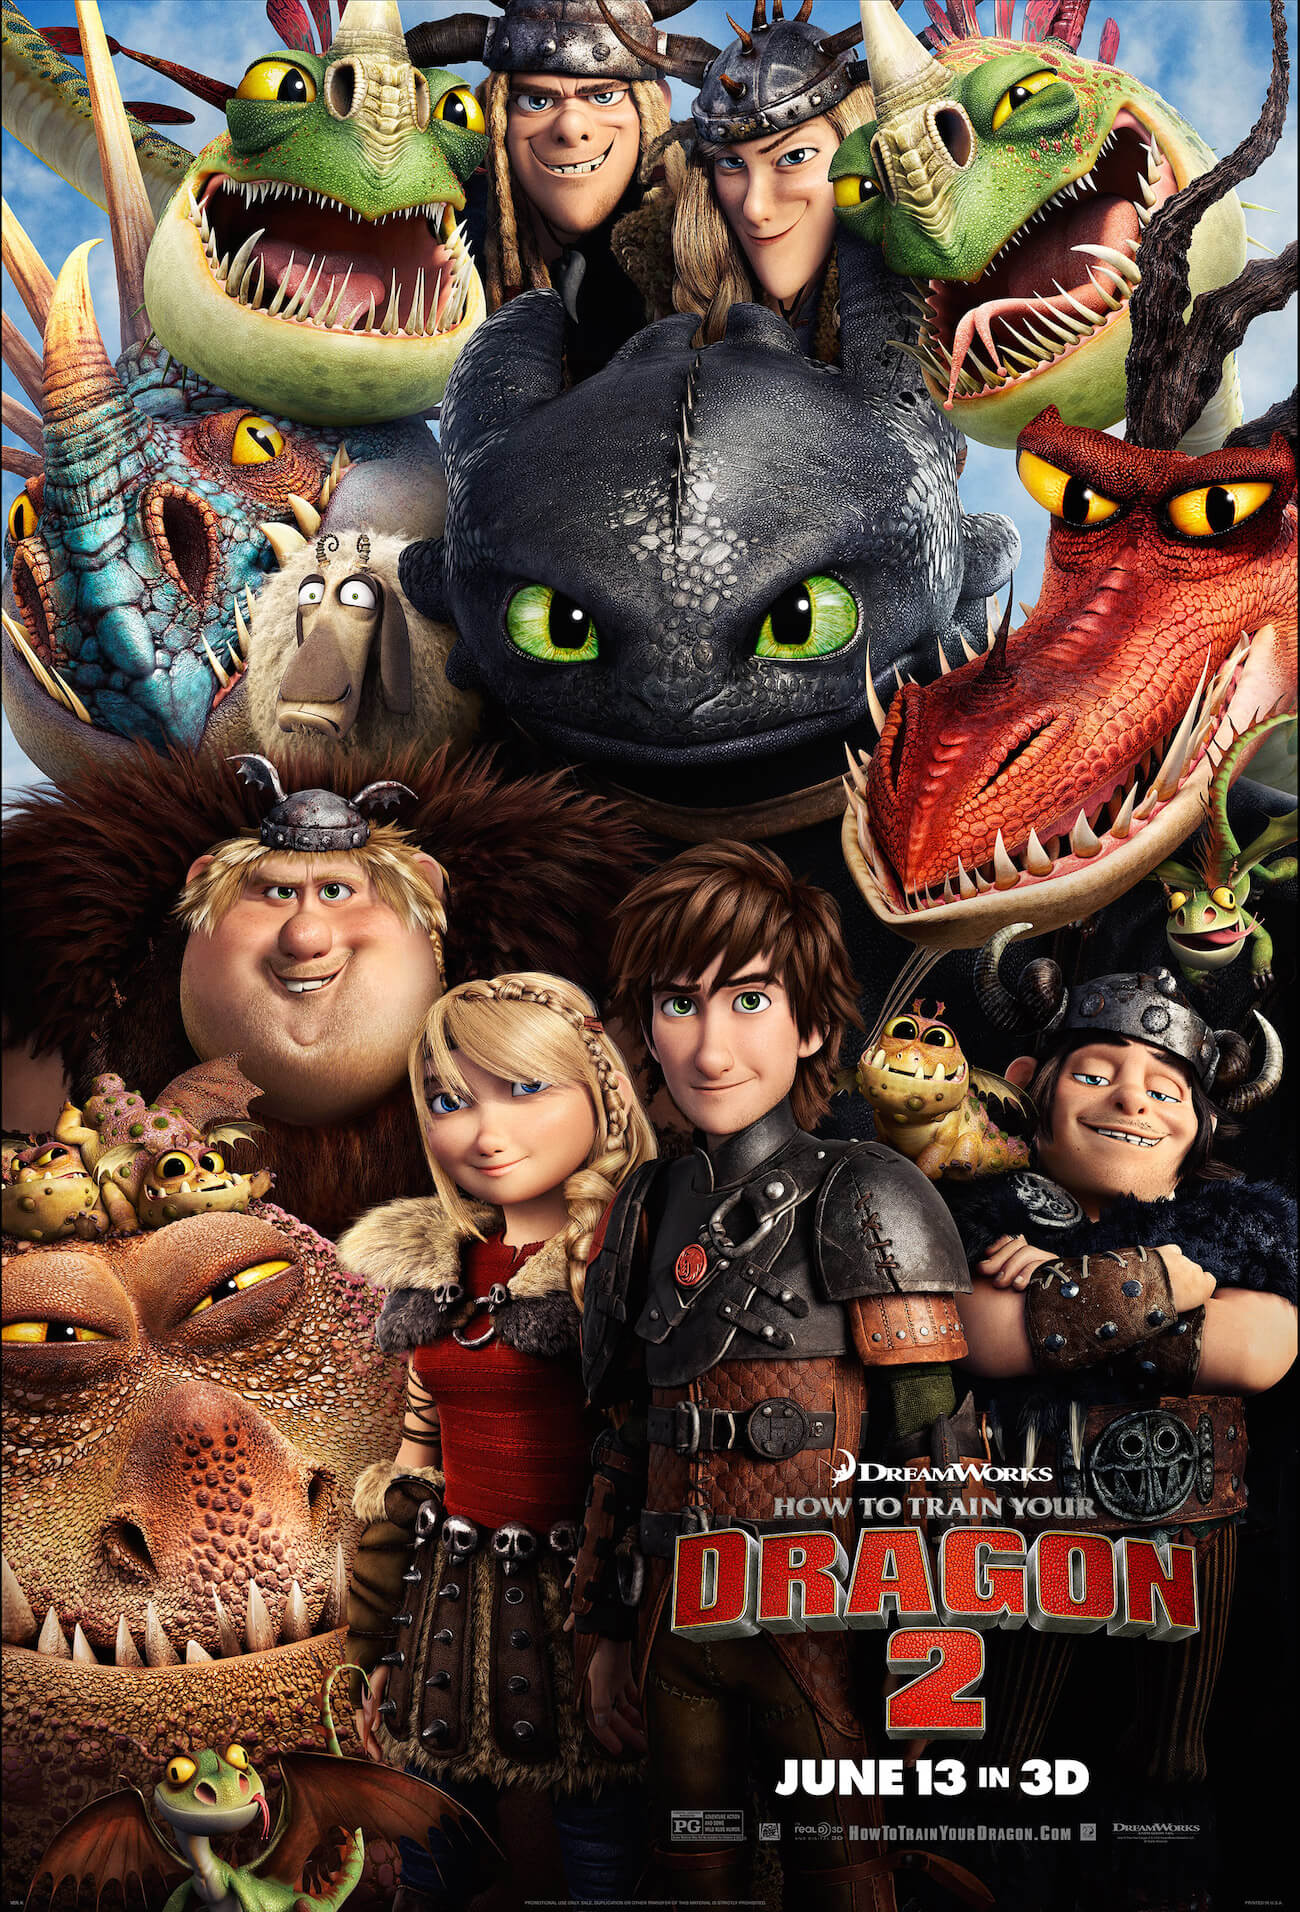 How to train your dragon 2 poster2